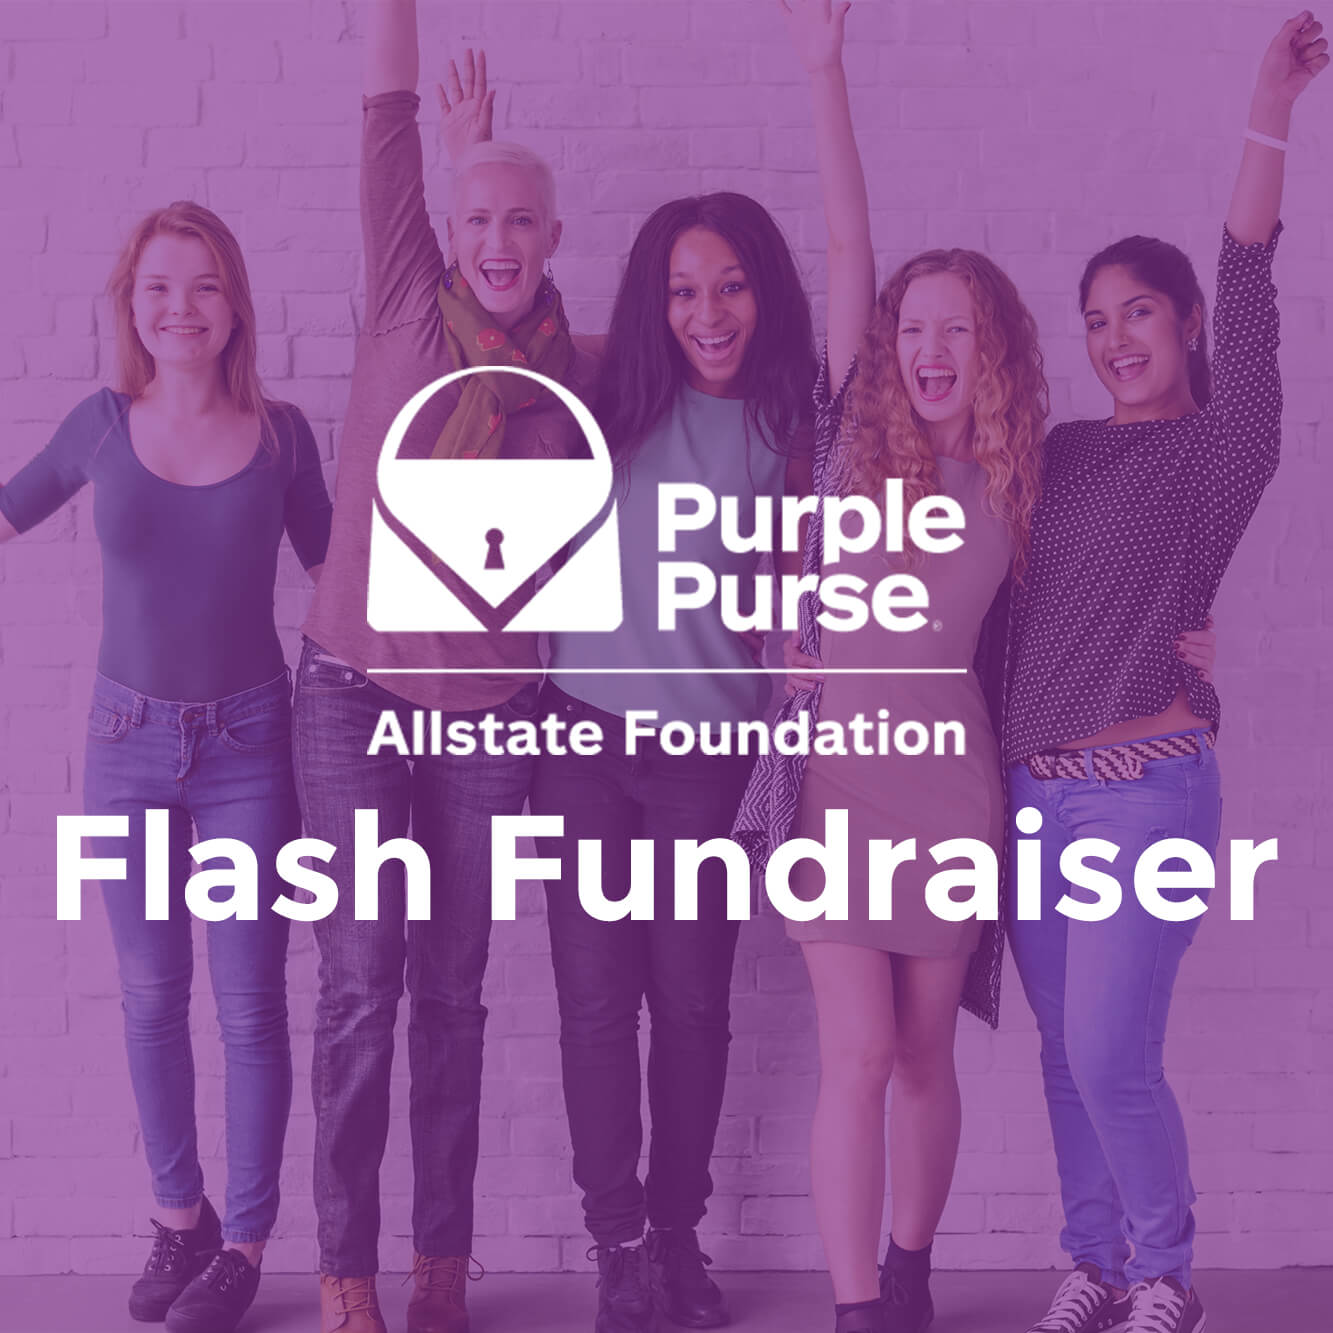 Purple Purse Flash Fundraiser - Click Here for Official Rules Photo